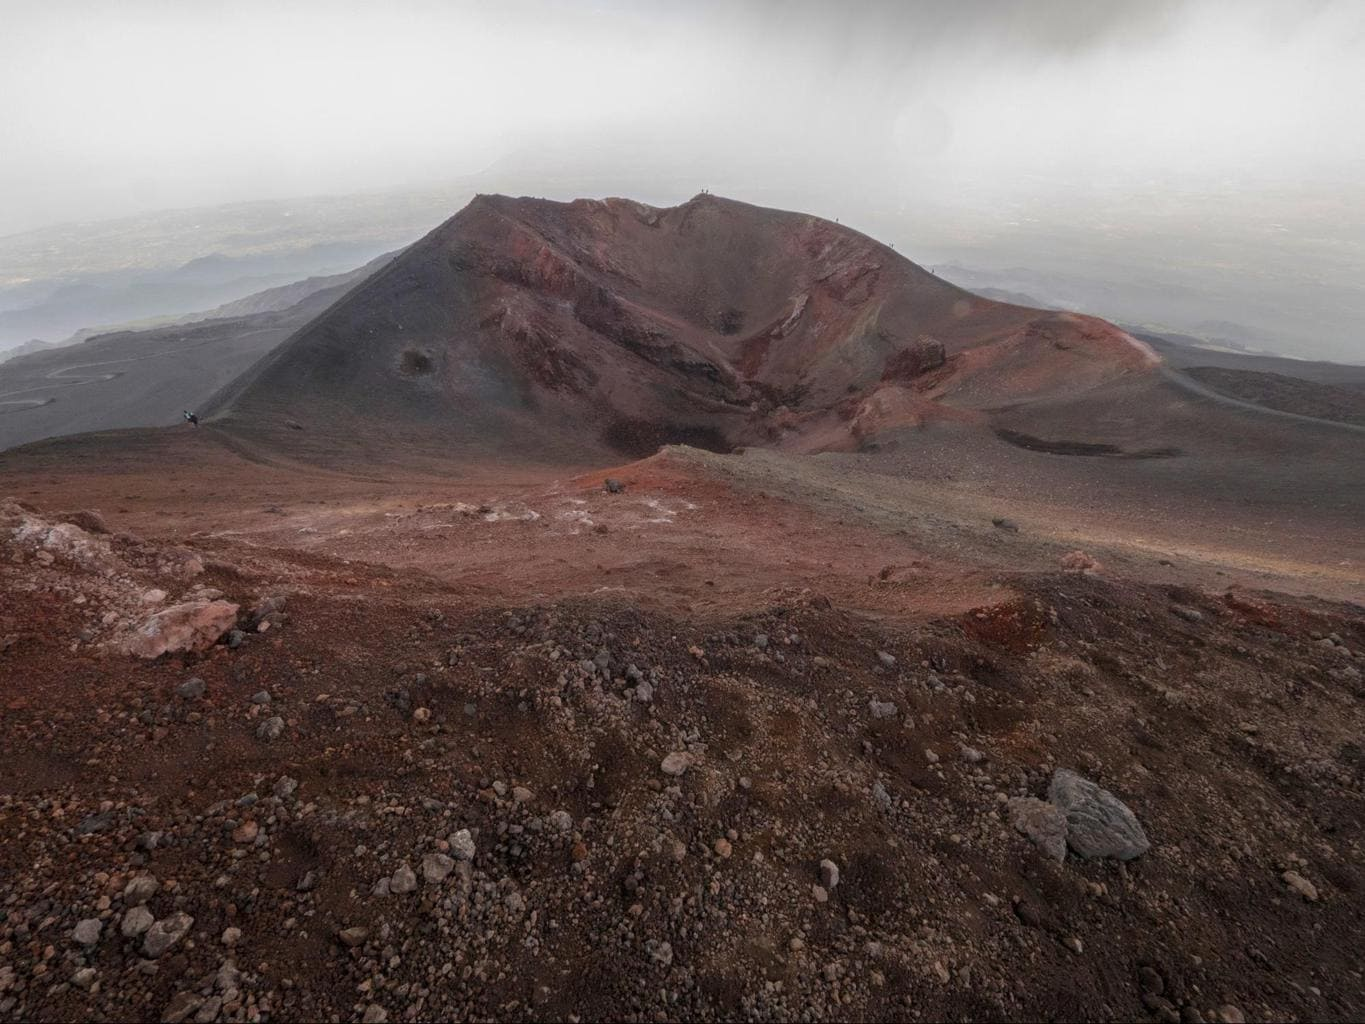 Come prepared for your Mount Etna hike